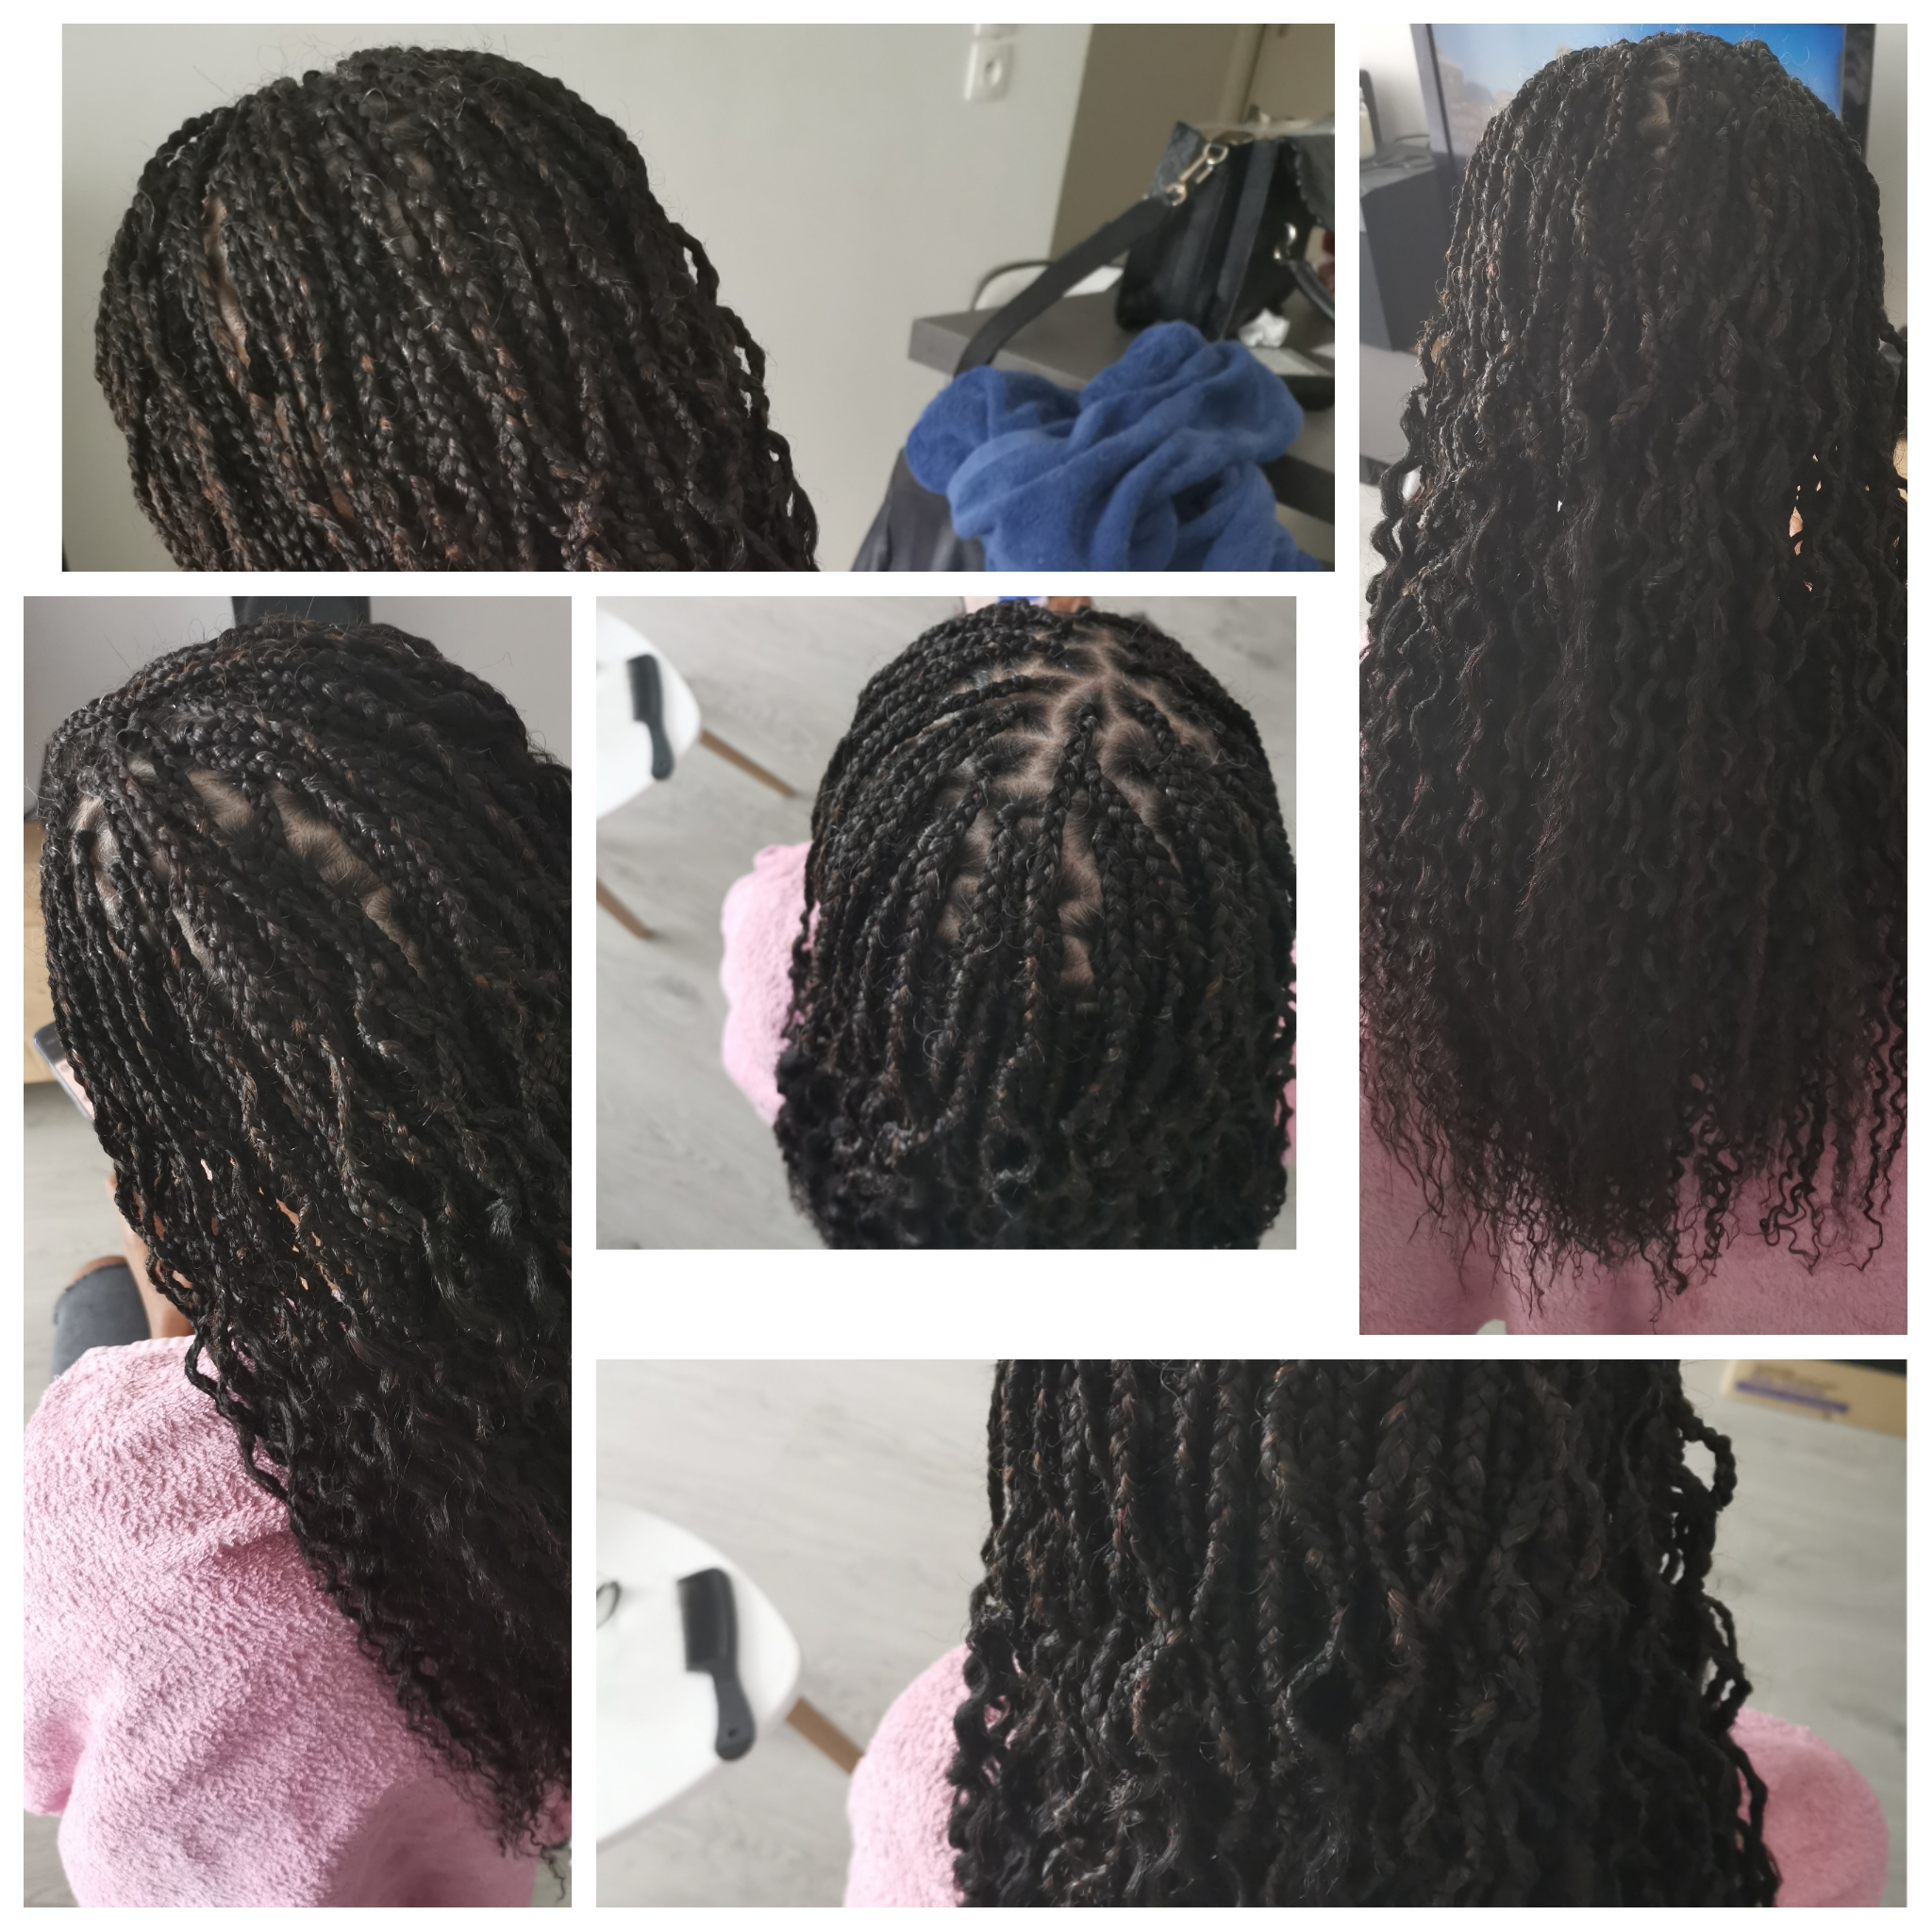 salon de coiffure afro tresse tresses box braids crochet braids vanilles tissages paris 75 77 78 91 92 93 94 95 POSZIAHM